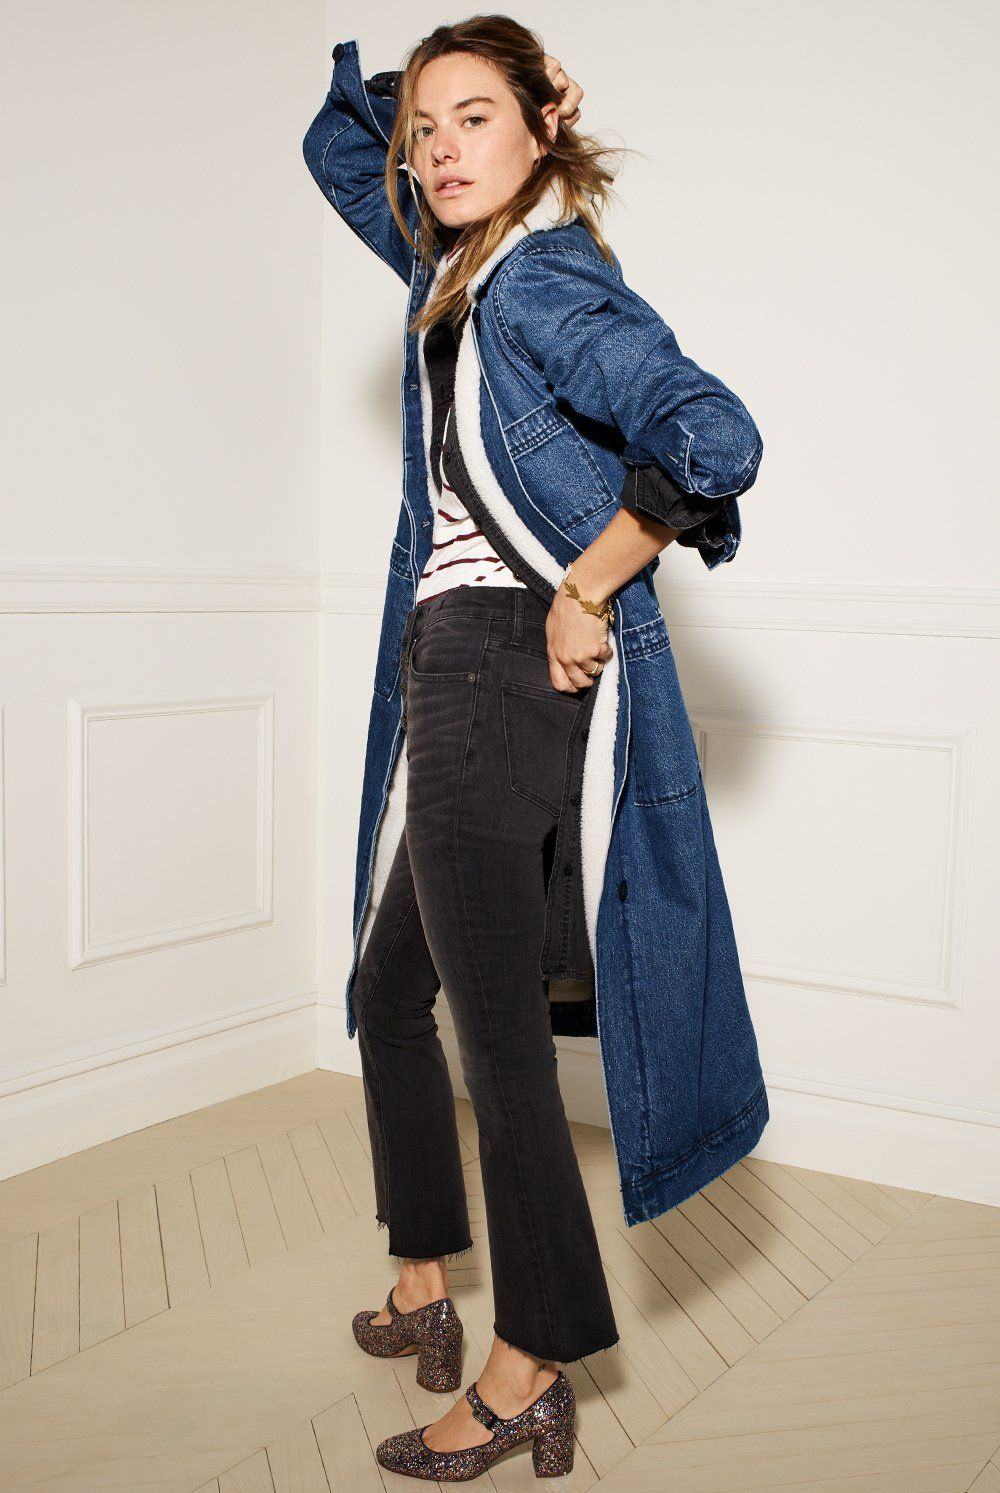 a630dd51edec madewell cali demi-boot jeans worn with the zelda mary jane + denim duster  coat.